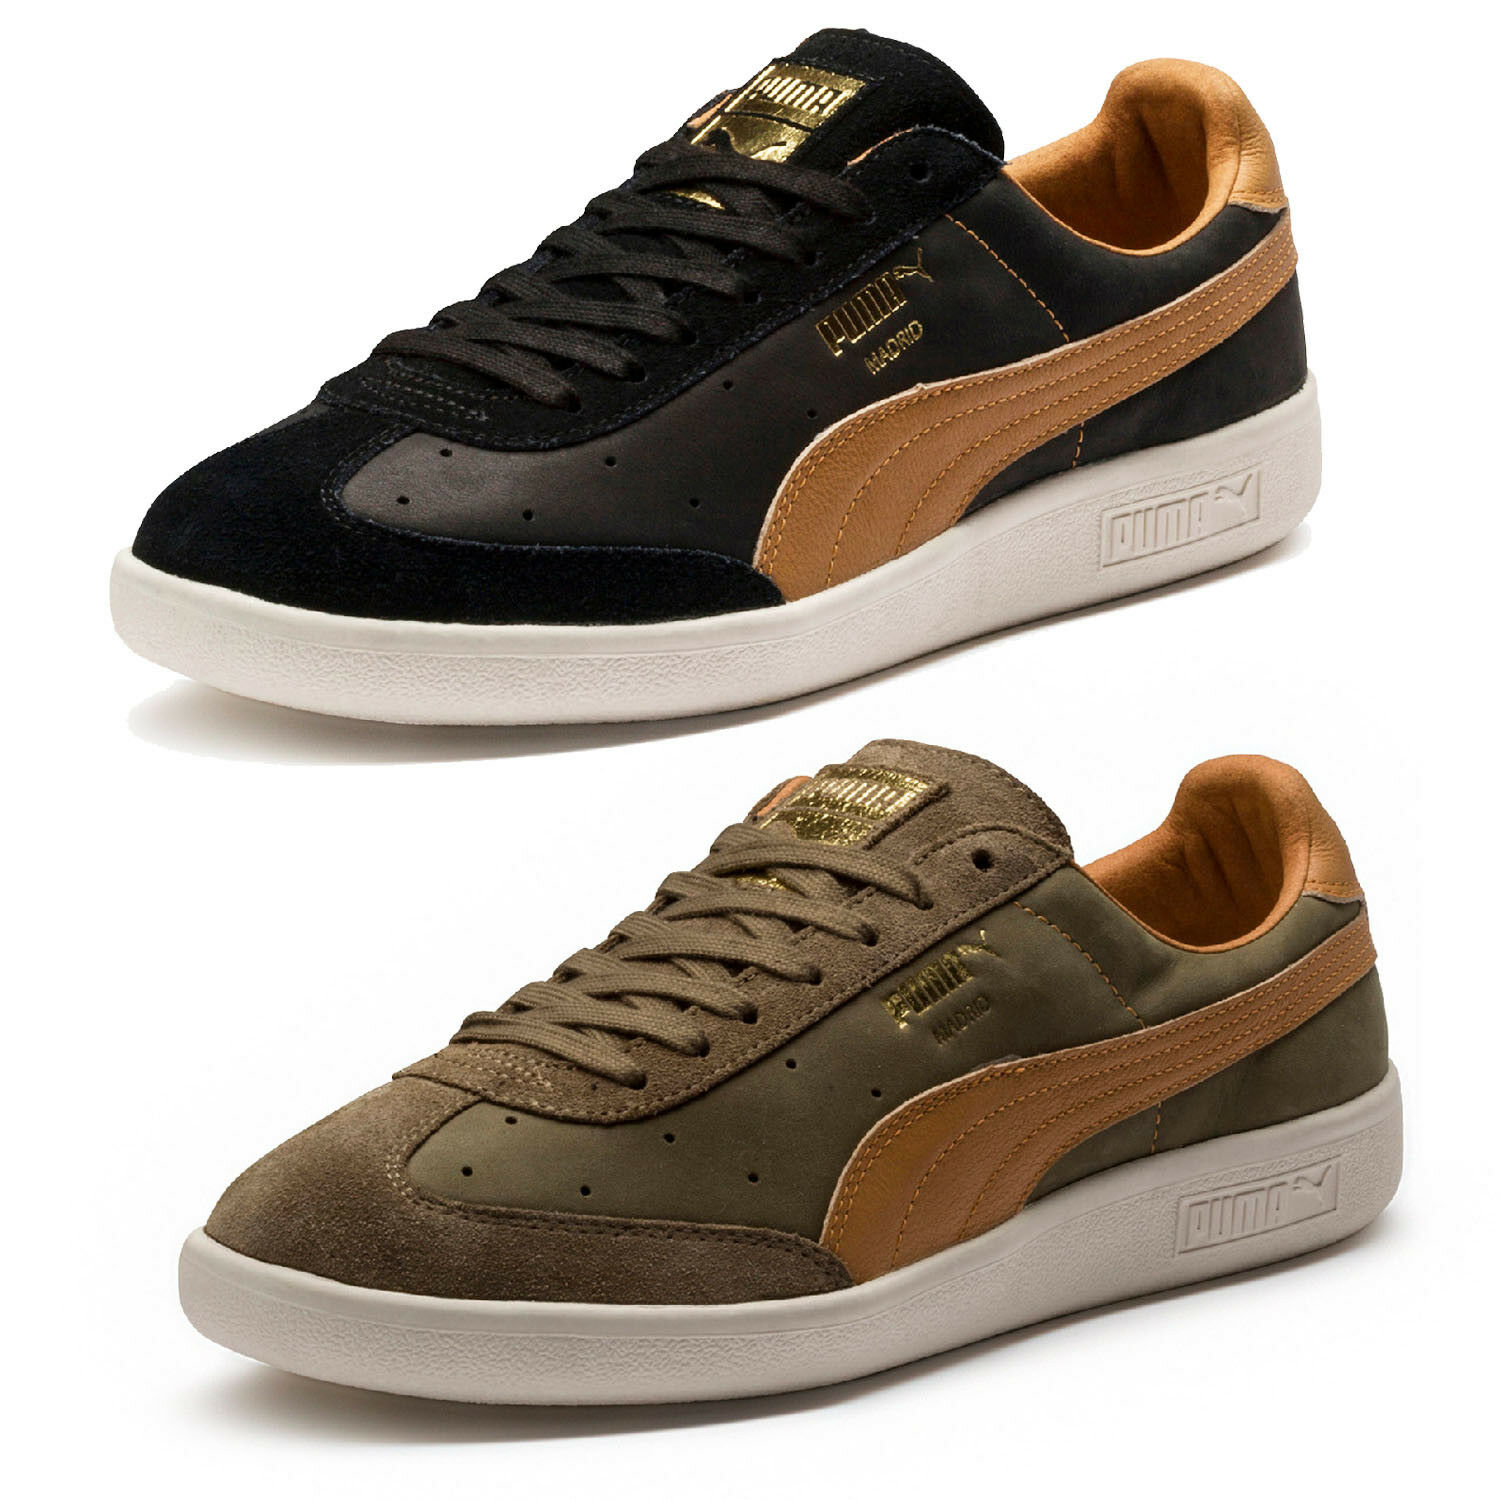 cb3dfd0c4a380c PUMA Madrid Tanned Trainers Green F02 42 for sale online